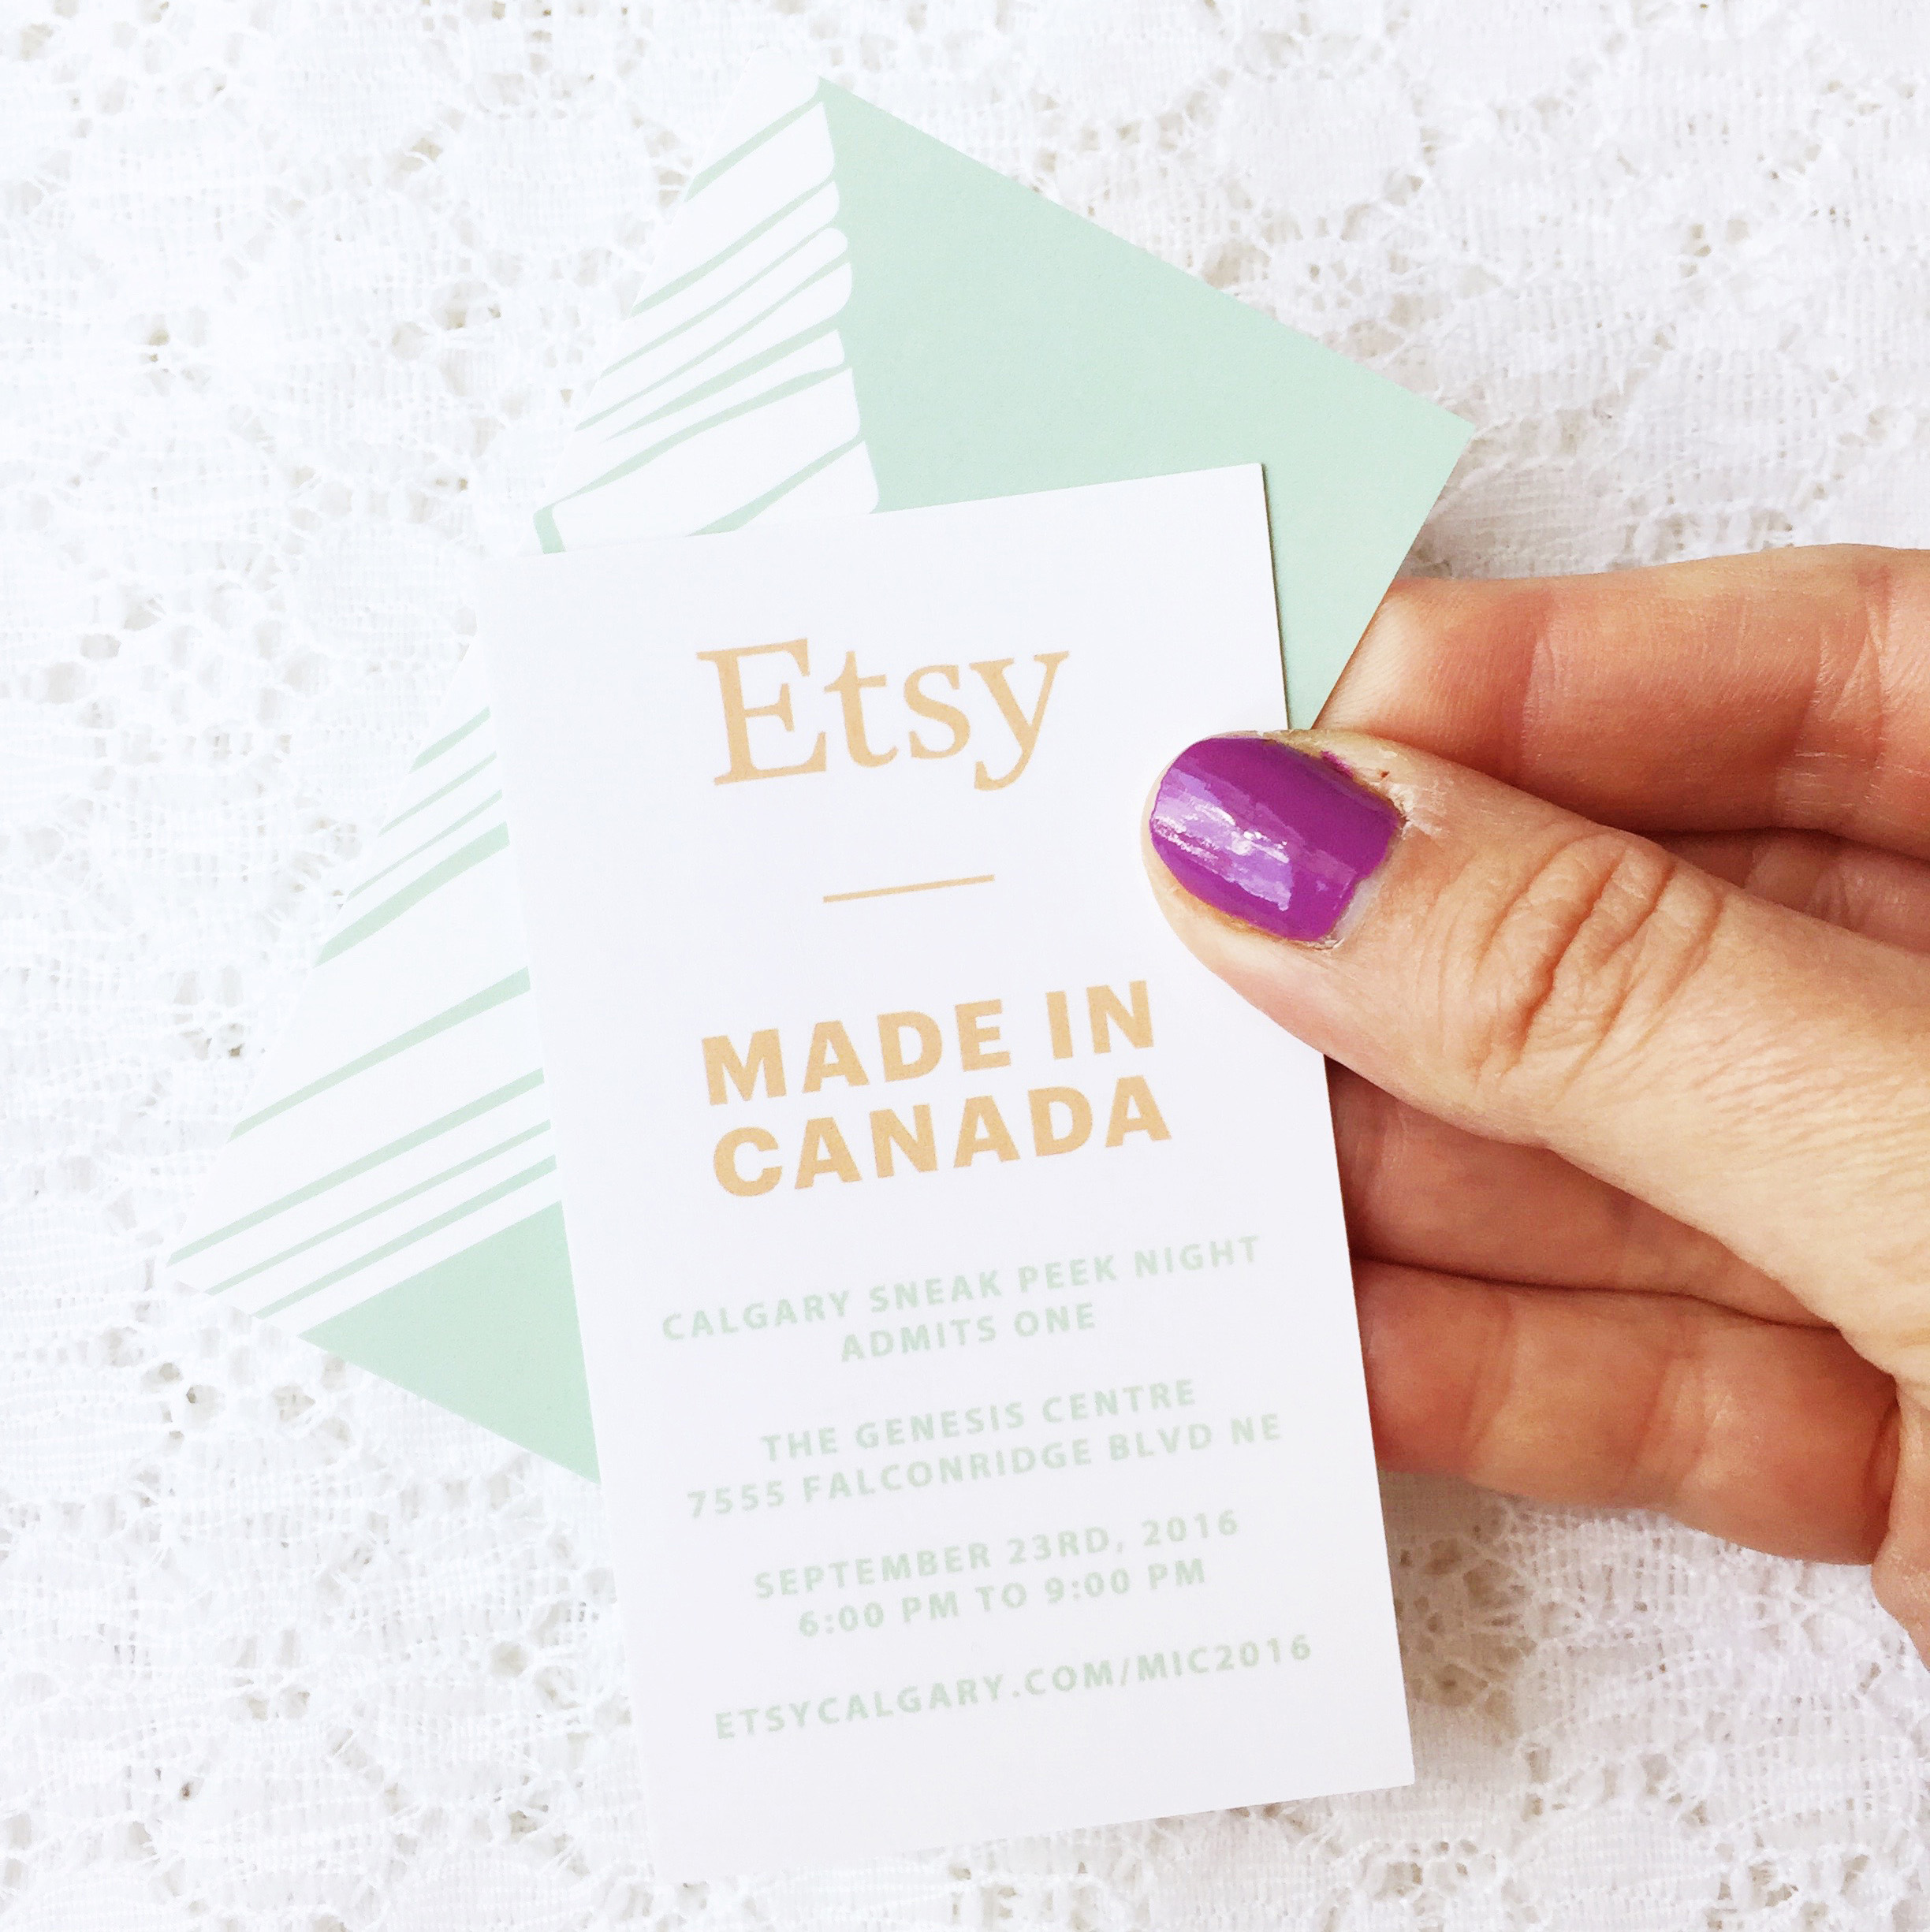 Etsy Calgary: Made In Canada Market, Sept 23-24th ~ Shop Local, Support Handmade